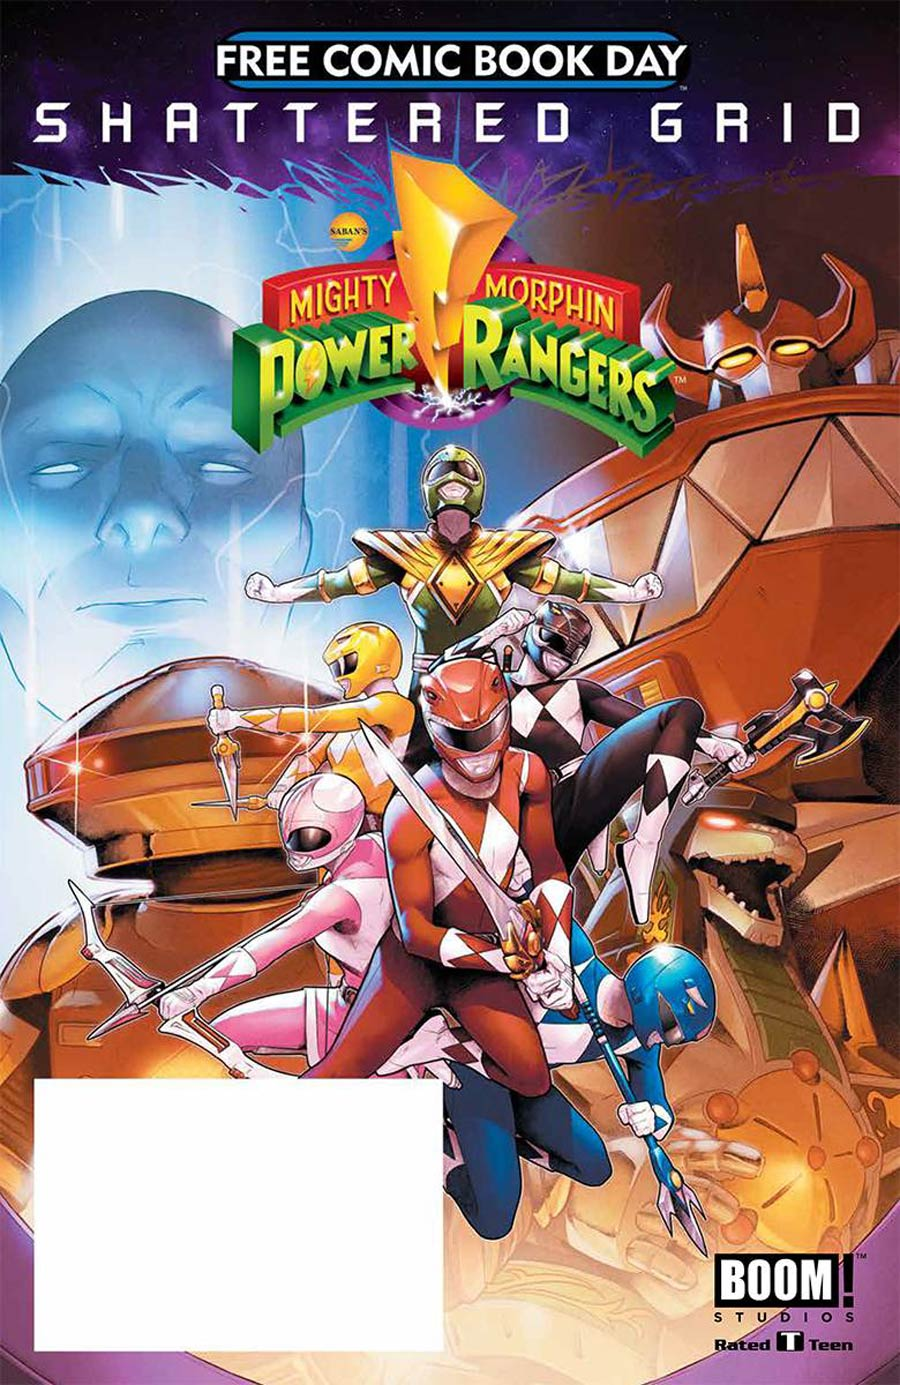 Mighty Morphin Power Rangers Special FCBD 2018